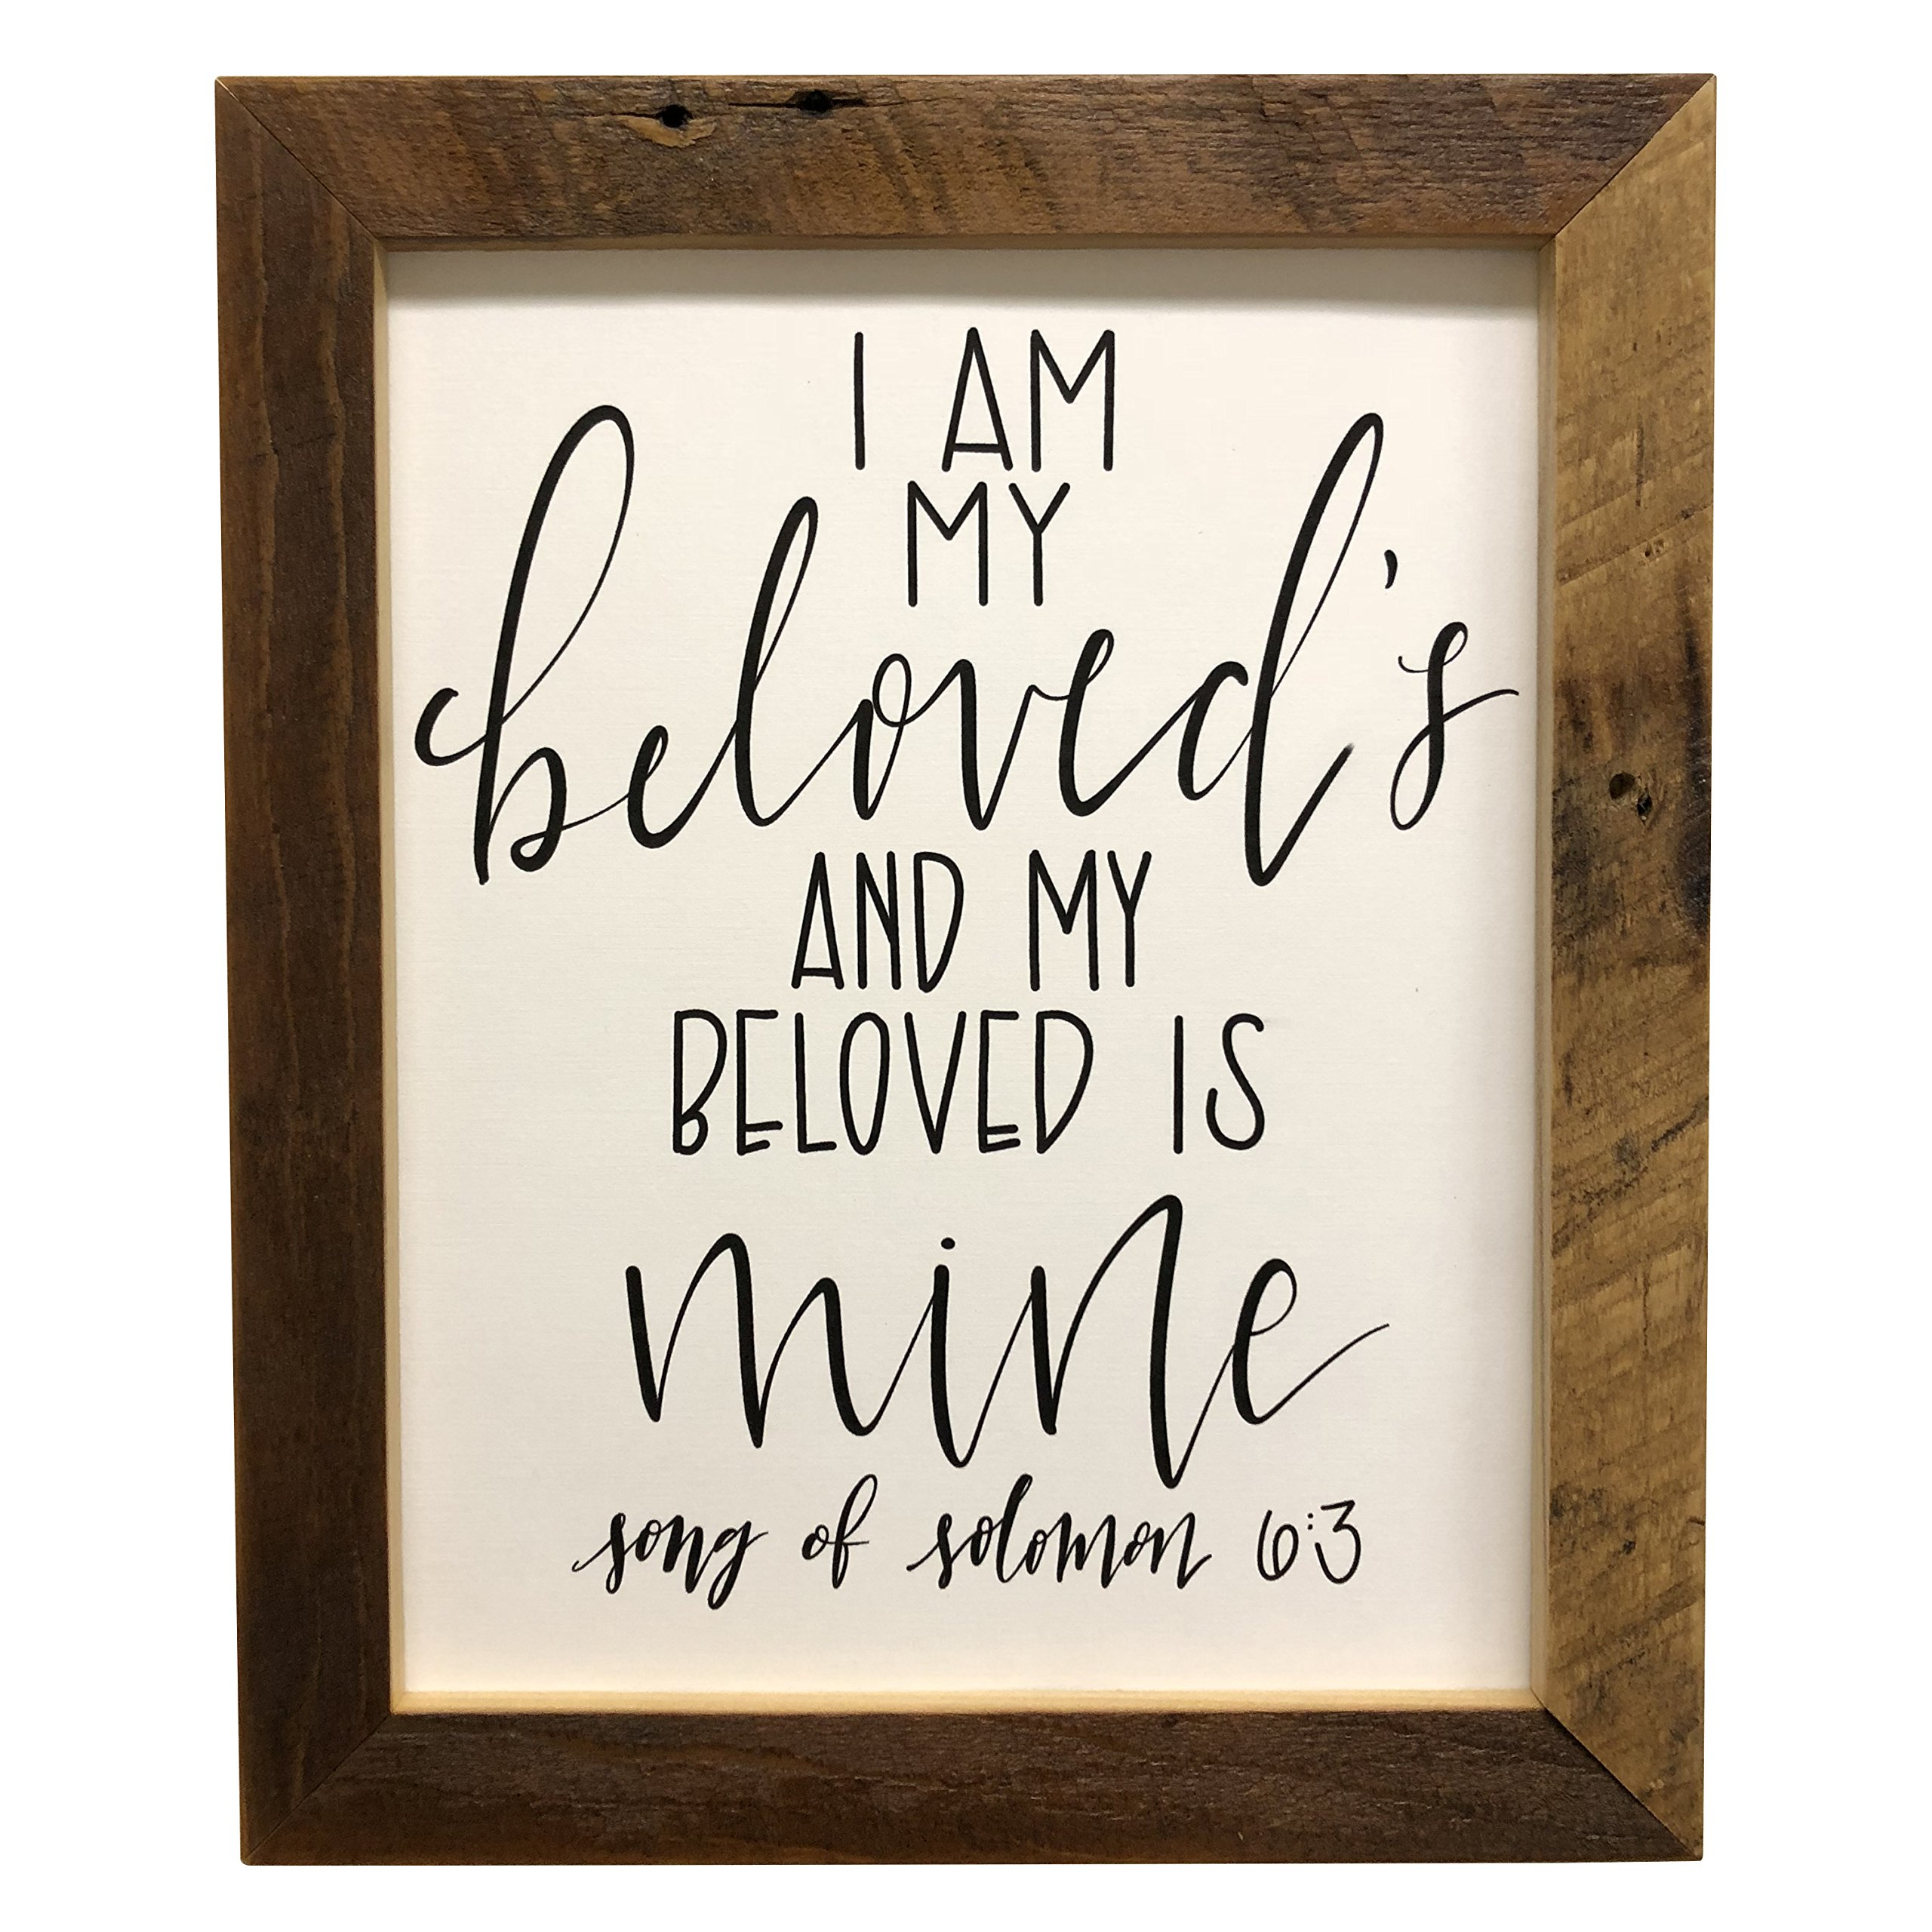 Hope Woodworking I Am My Beloved's and My Beloved is Mine Print, Bible Verse, Song Of Solomon 6:3, Picture Frame, 11x14 Reclaimed Wood